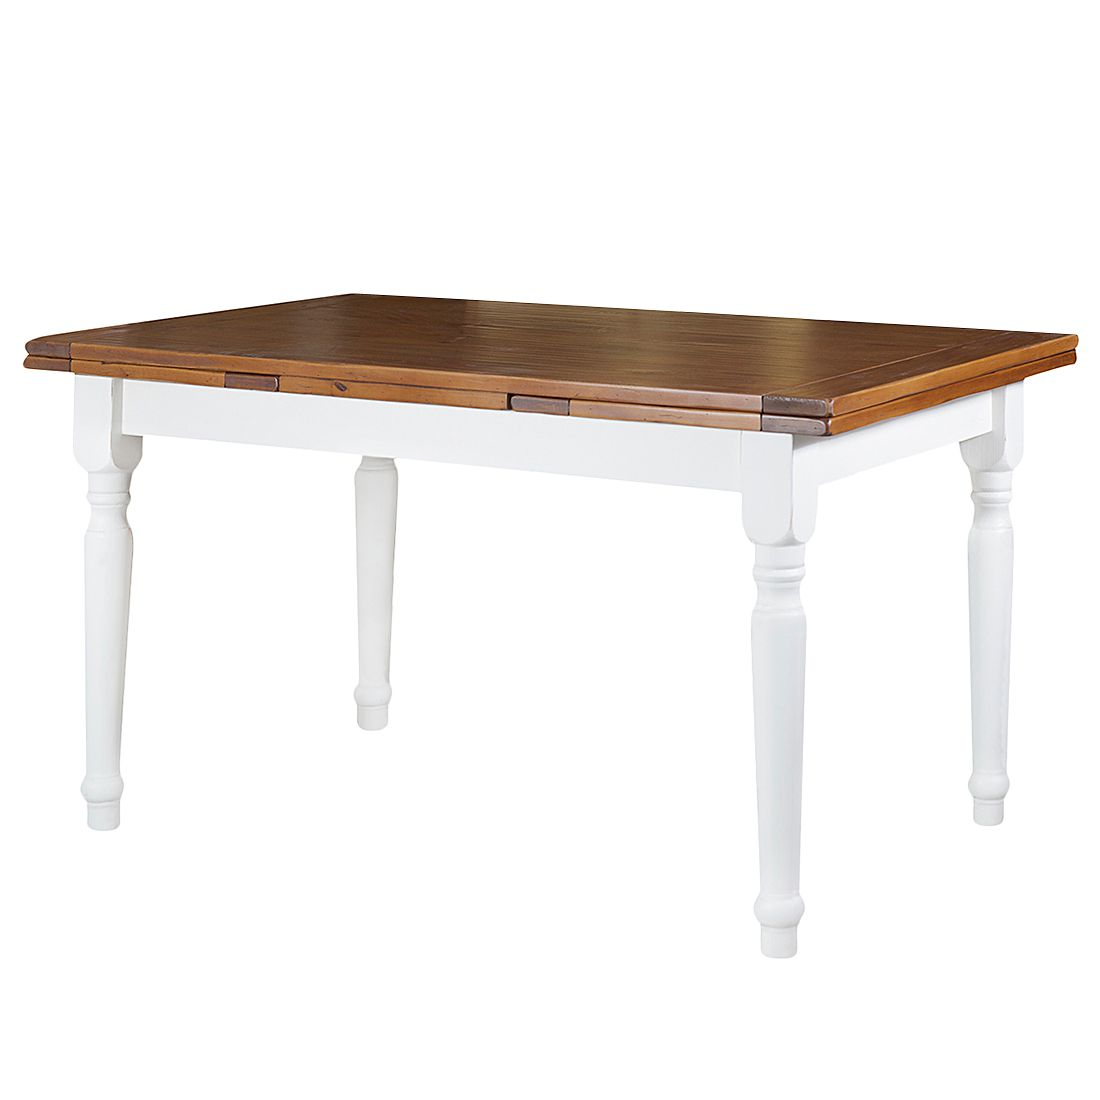 Pied a coulisse guide d 39 achat for Table extractible